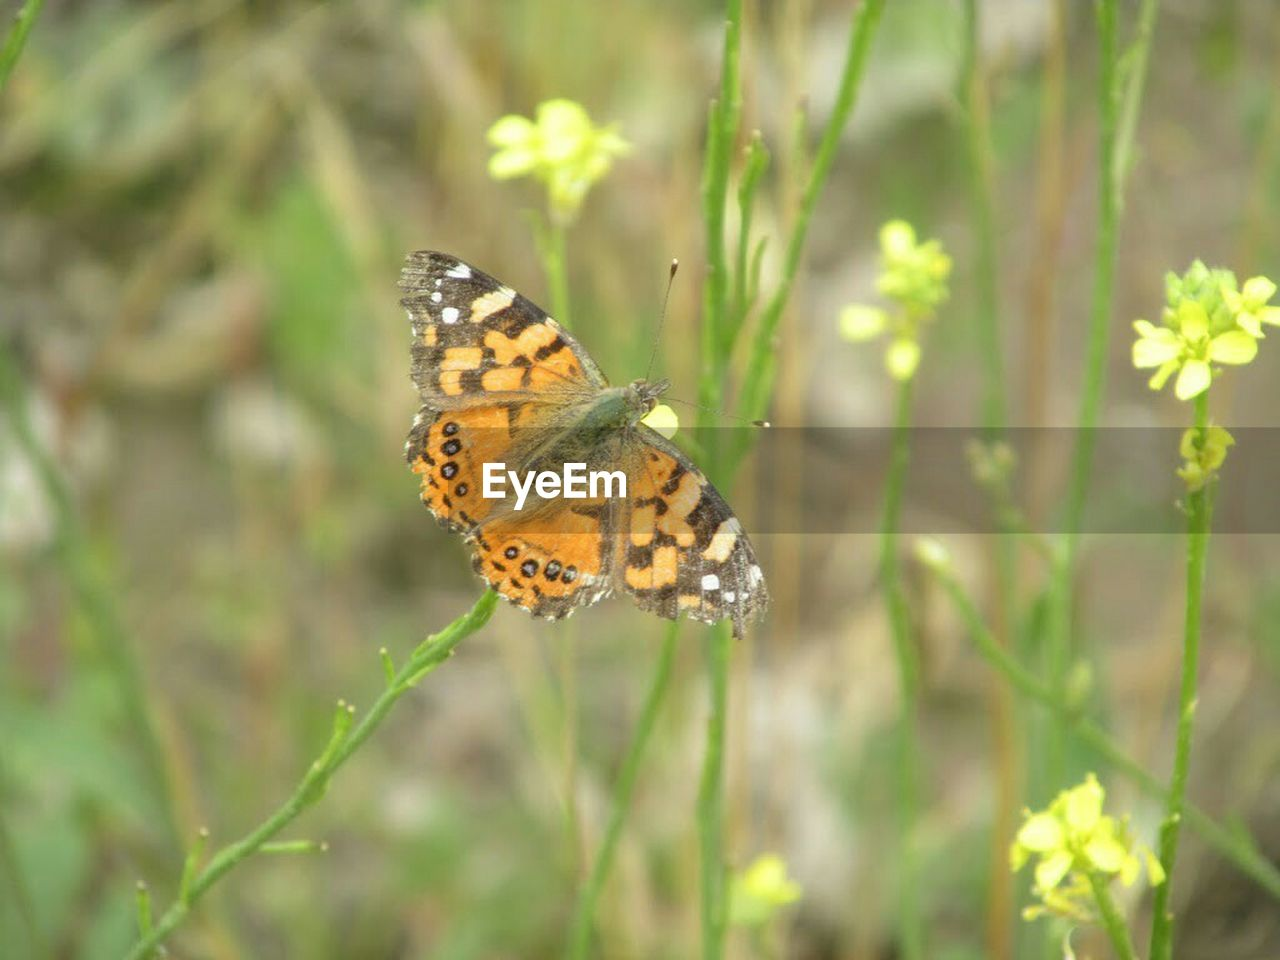 insect, butterfly, nature, one animal, butterfly - insect, animals in the wild, plant, animal themes, flower, no people, outdoors, fragility, day, growth, close-up, beauty in nature, grass, freshness